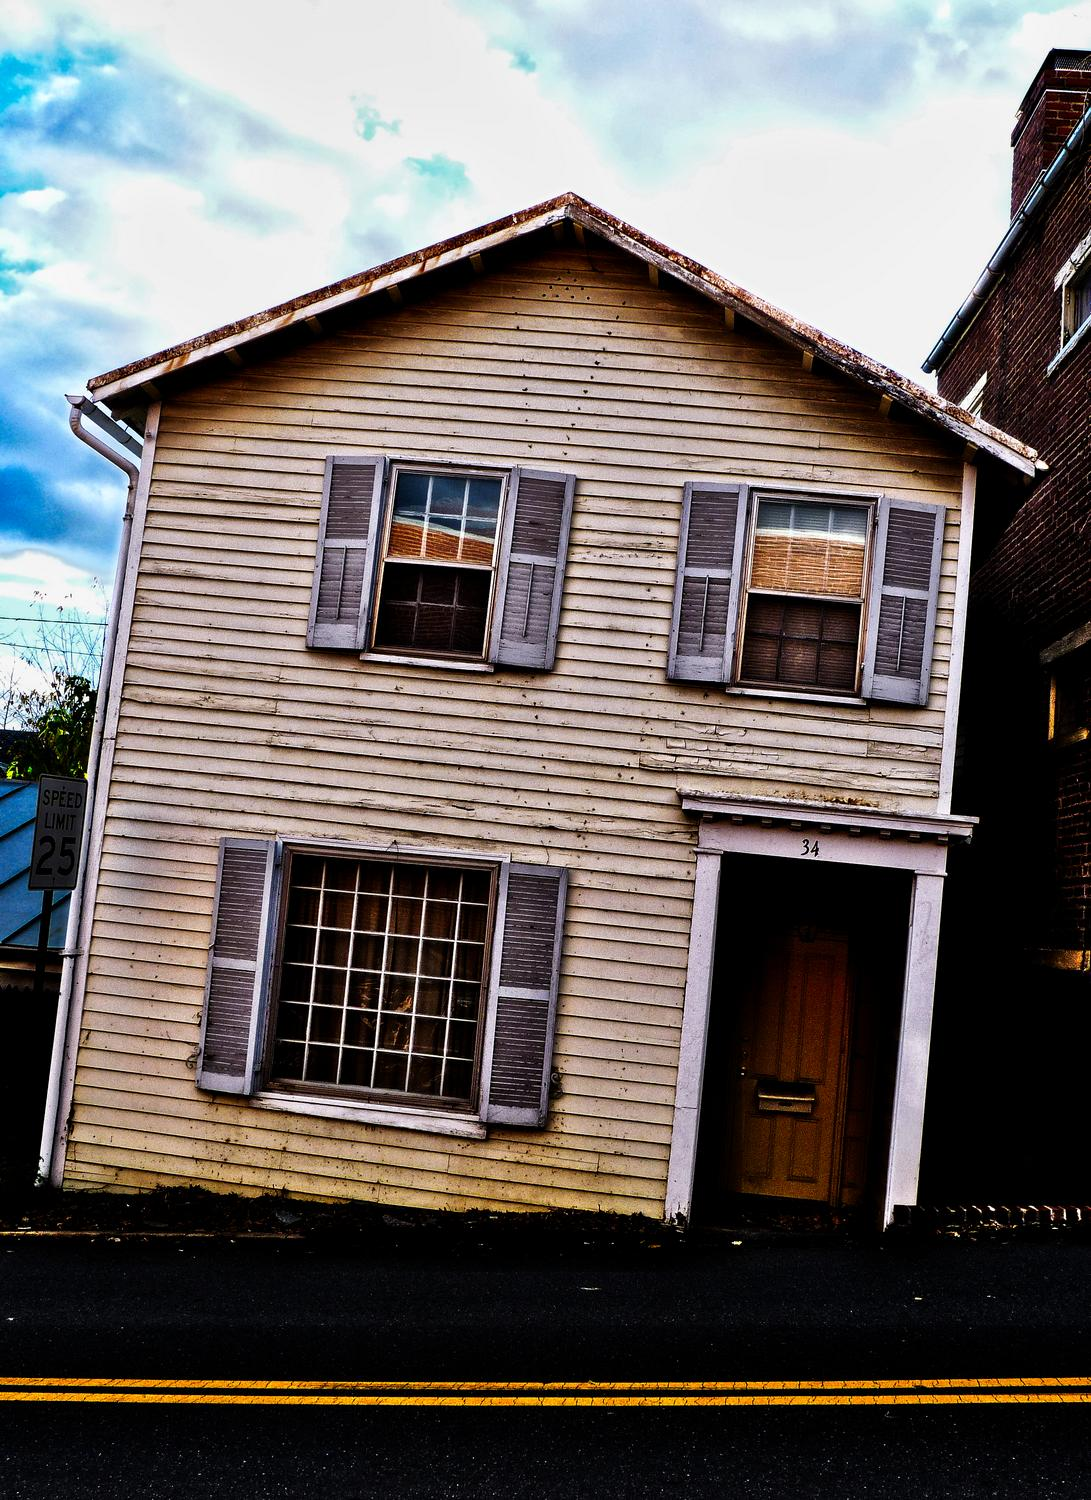 - Warrenton, Virginia-  Panasonic DMC-FZ35 - One of the famous tilting houses of Warrenton. - Tony Karp, design, art, photography, techno-impressionist, techno-impressionism, aerial photography , drone , drones , dji , mavic pro , video , 3D printing - Books -